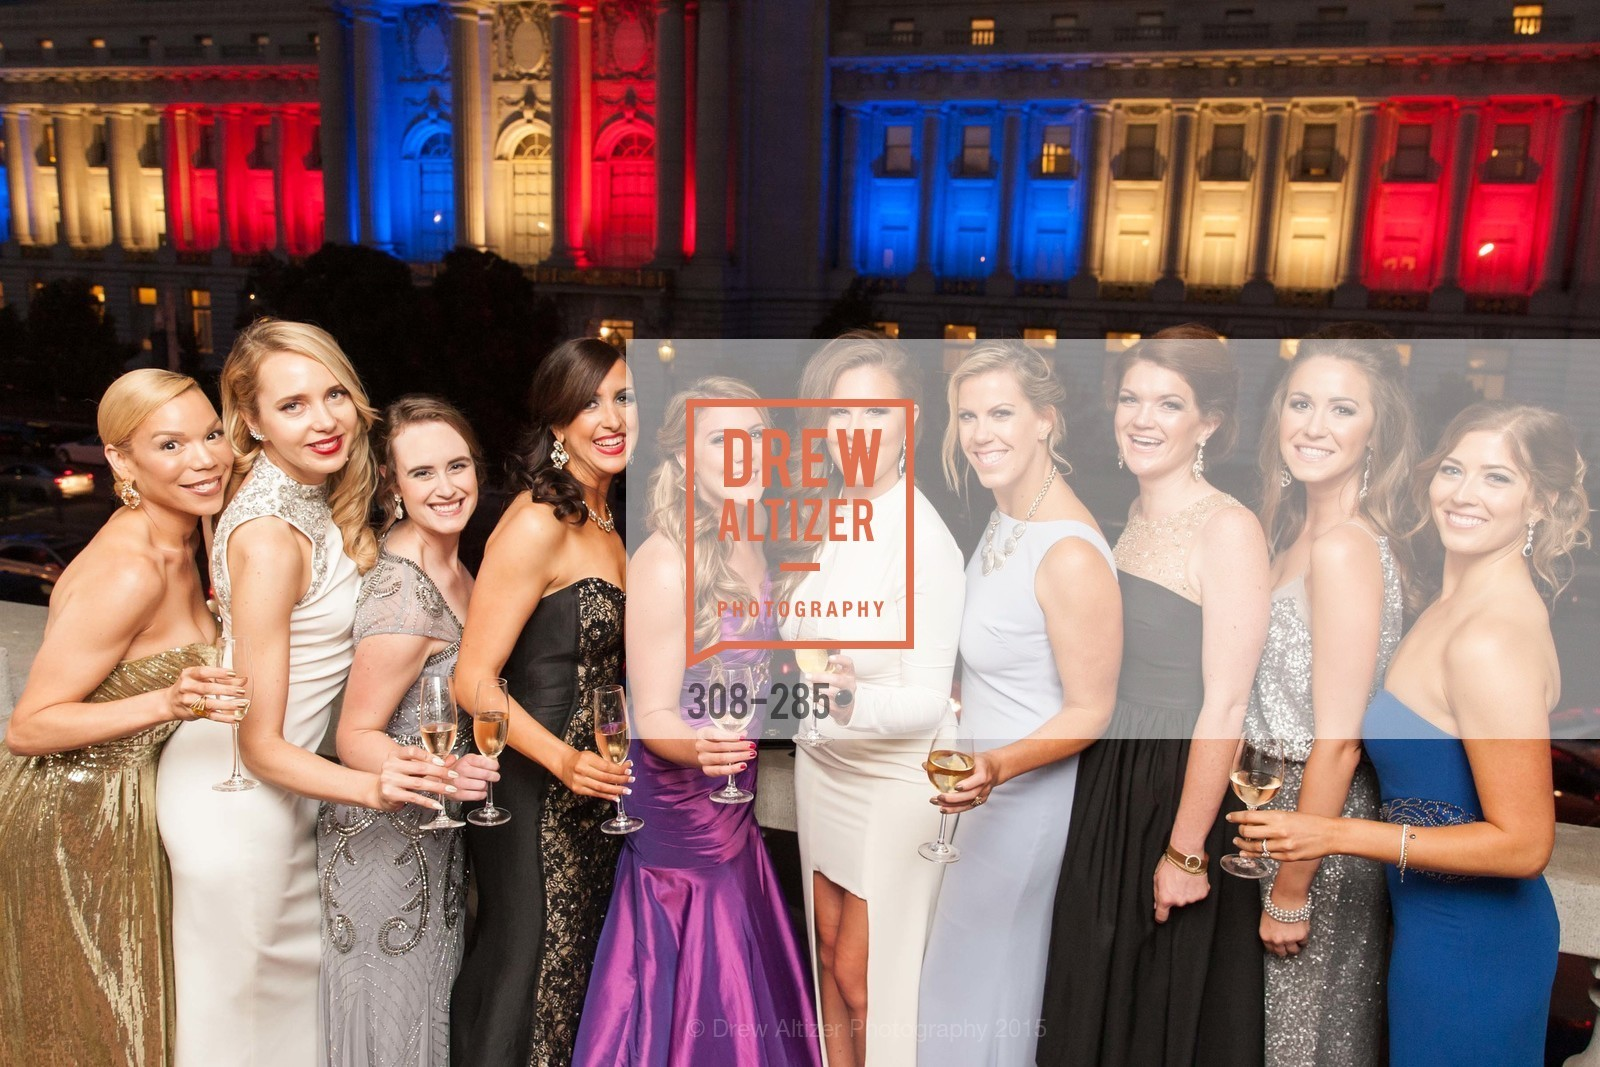 Julia Mathis, Laurie Diab, Susan Walker, Shannon Eliot, Kari Lincks, Bailey Haws, Lauren Groff, Emily Brown, Megan Graf, Victoria Weatherford, San Francisco Opera's BRAVO! CLUB Opening Night Gala, War Memorial Opera House. 301 Van Ness Ave, September 11th, 2015,Drew Altizer, Drew Altizer Photography, full-service agency, private events, San Francisco photographer, photographer california